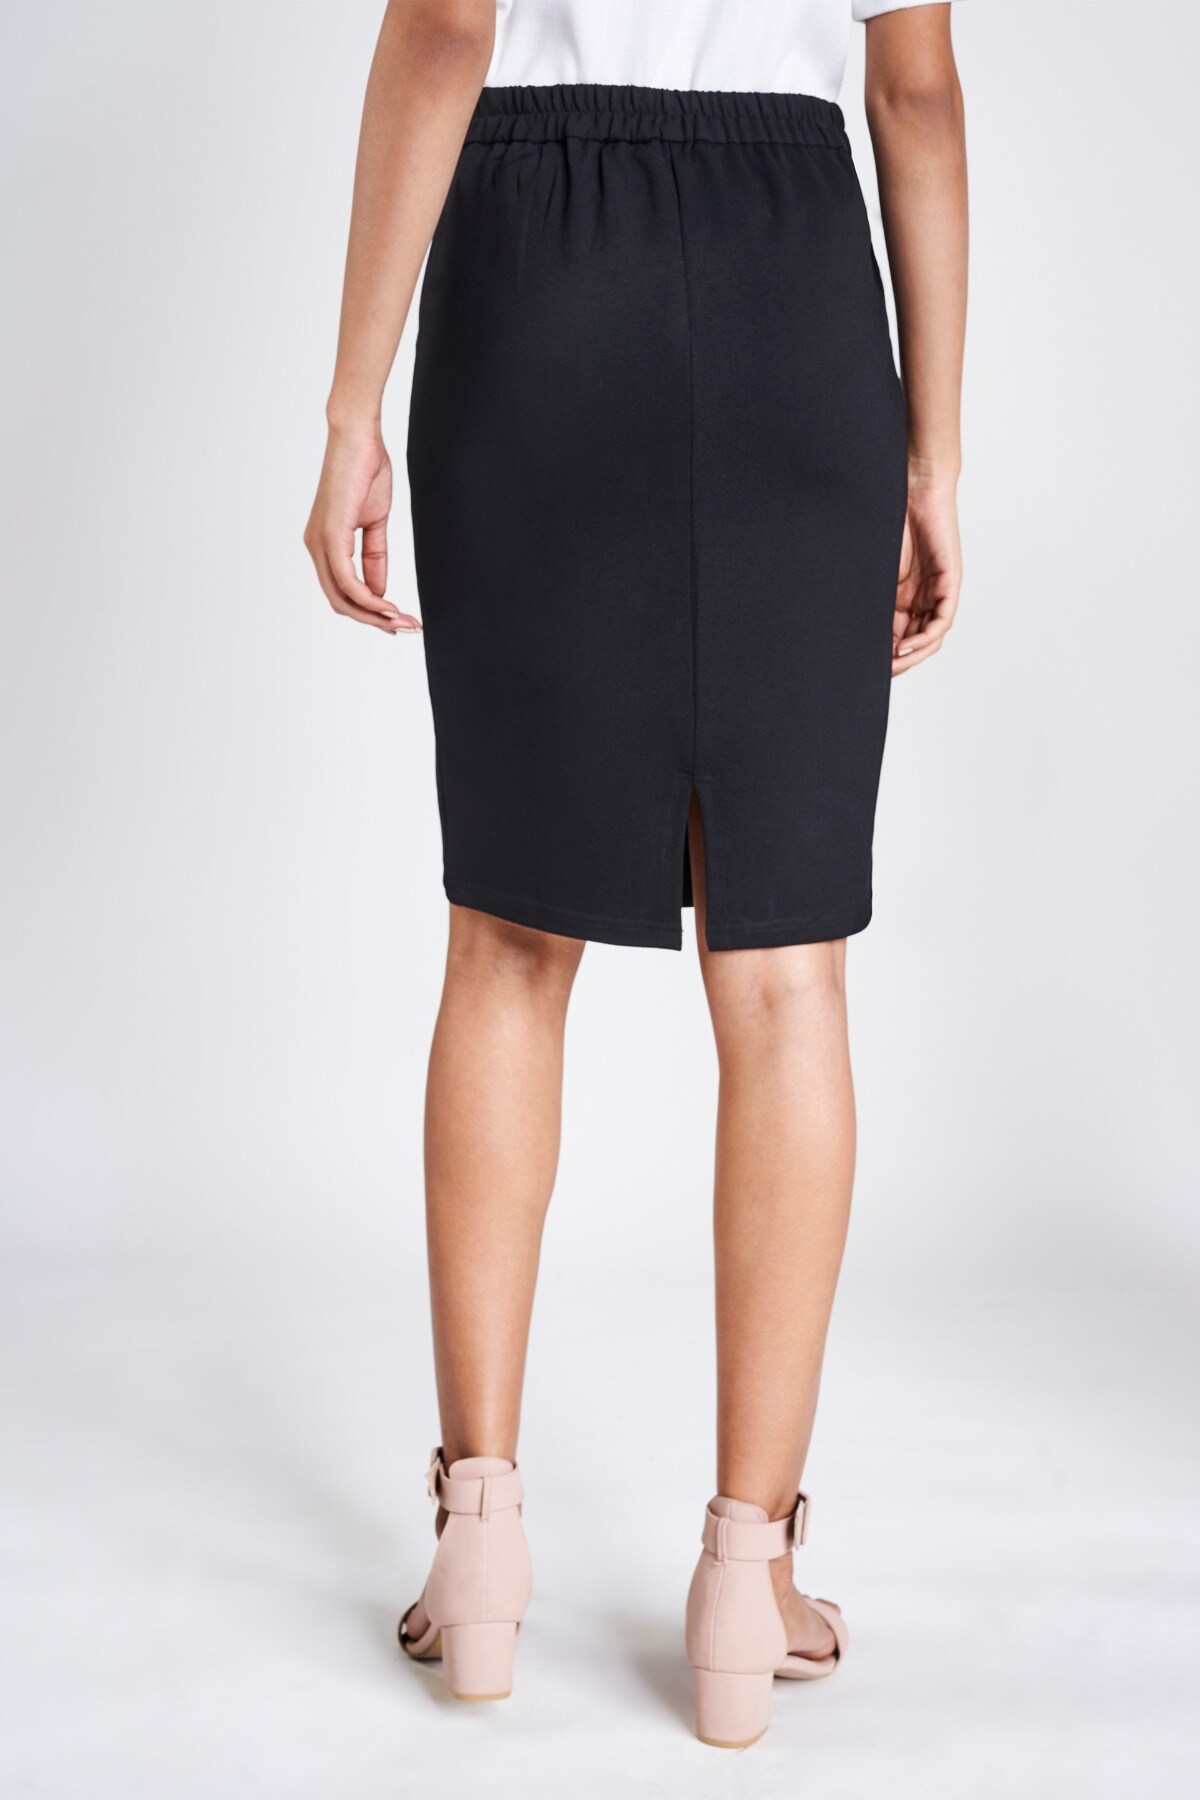 AND | Black Solid A-Line Skirt